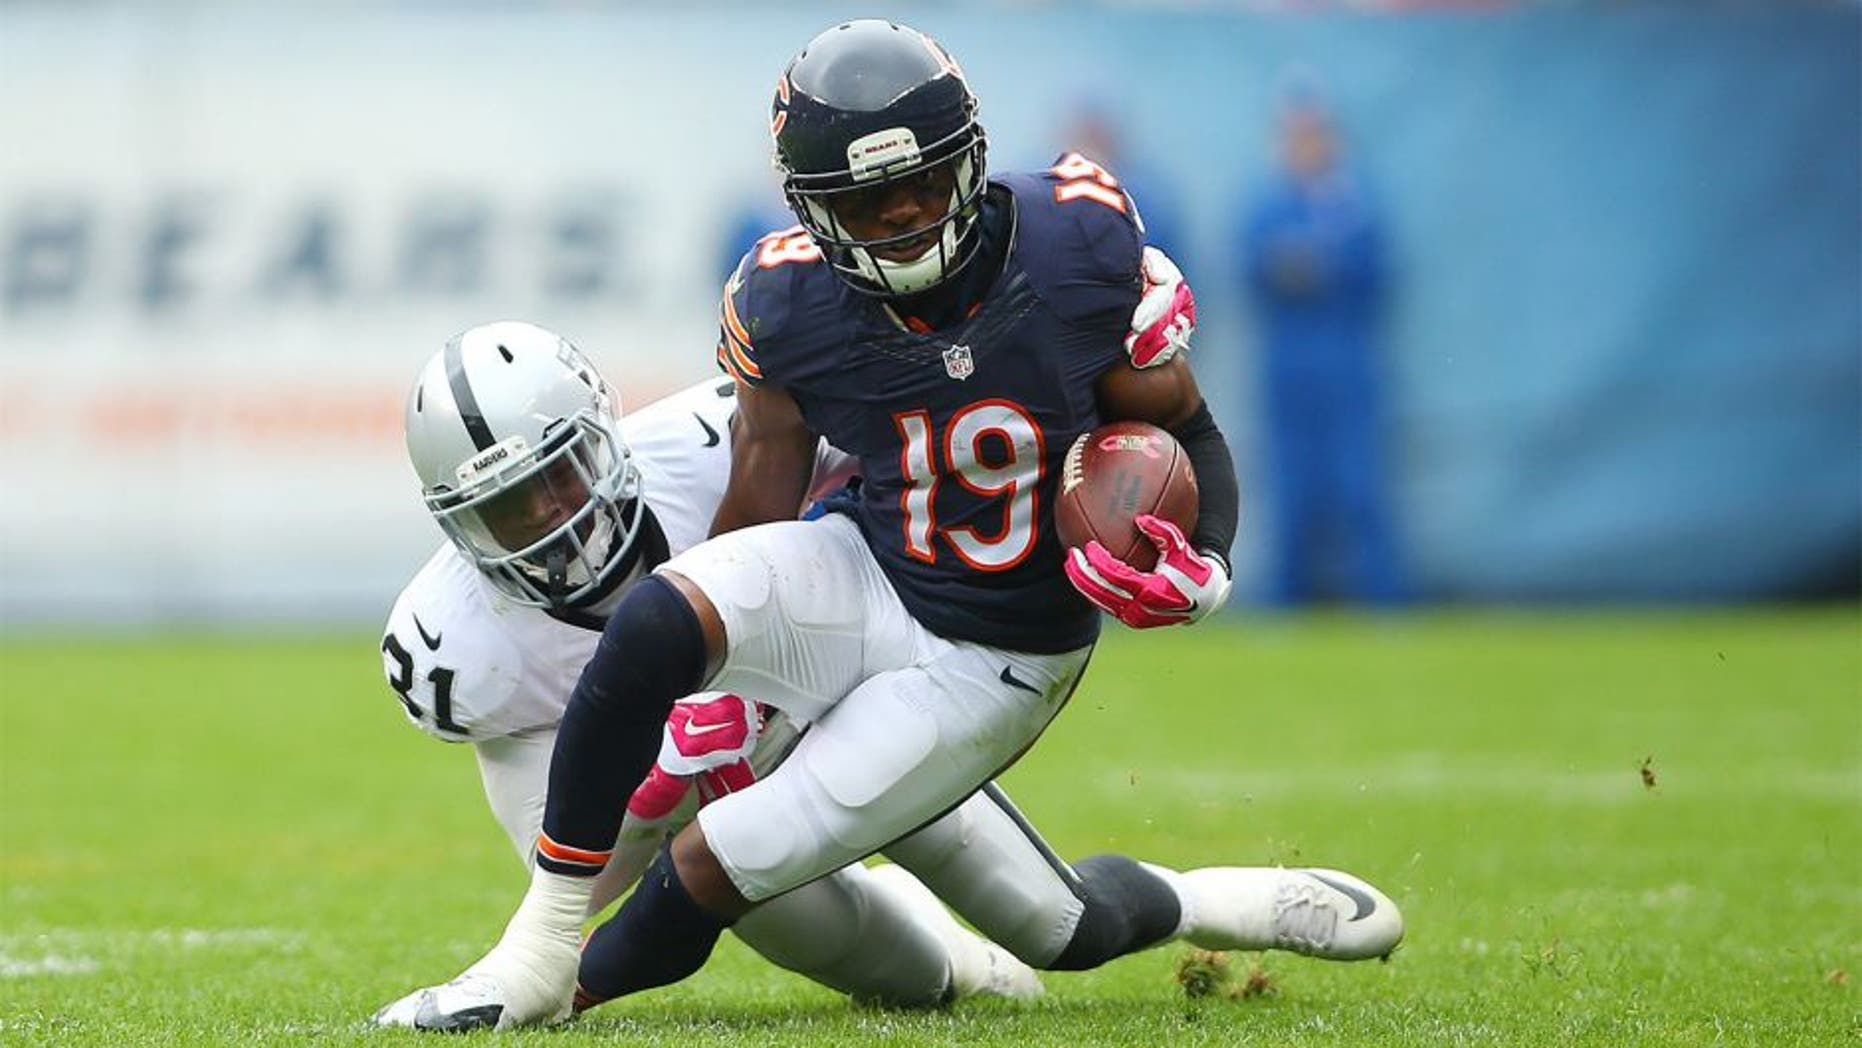 Oct 4, 2015; Chicago, IL, USA; Chicago Bears wide receiver Eddie Royal (19) is tackled by Oakland Raiders cornerback Neiko Thorpe (31) during the second half at Soldier Field. Mandatory Credit: Jerry Lai-USA TODAY Sports